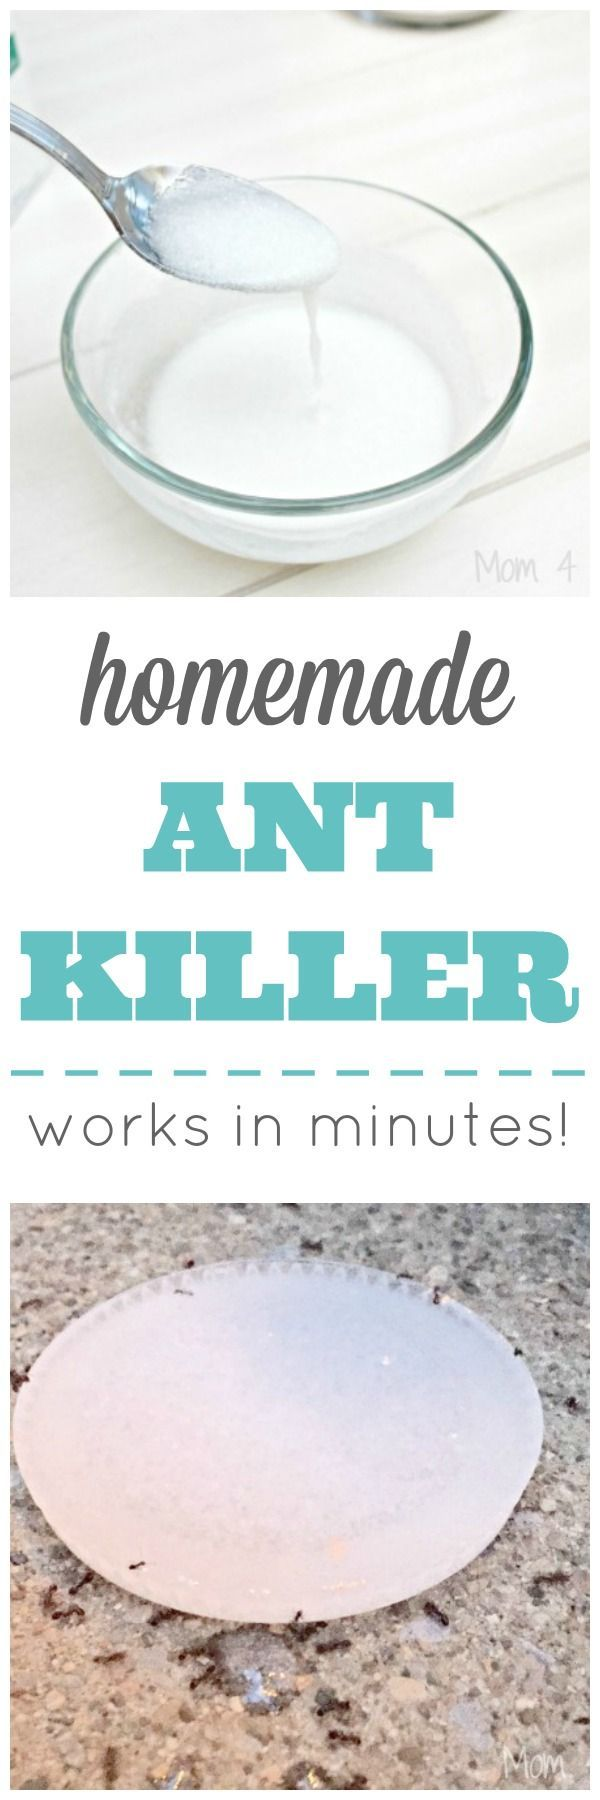 Homemade Ant Killer - Works In Minutes! @mom4real